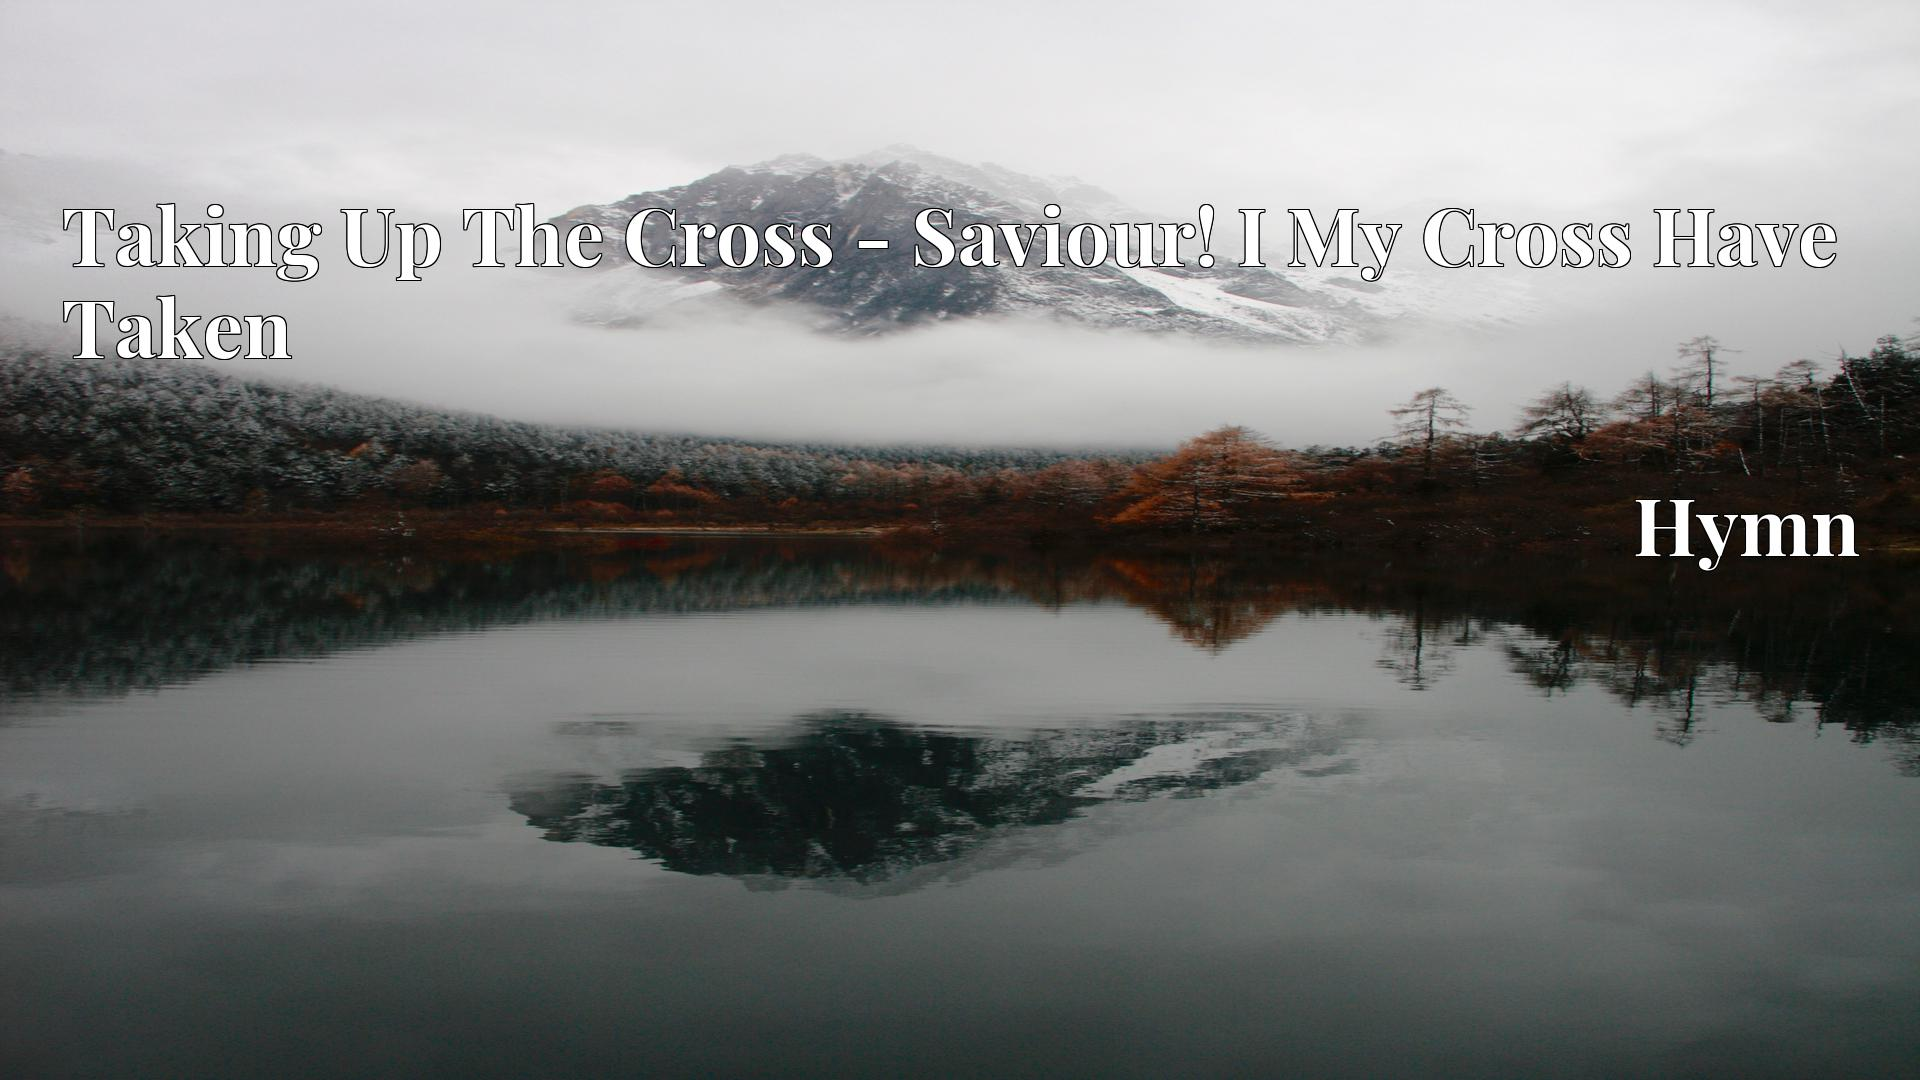 Taking Up The Cross - Saviour! I My Cross Have Taken - Hymn